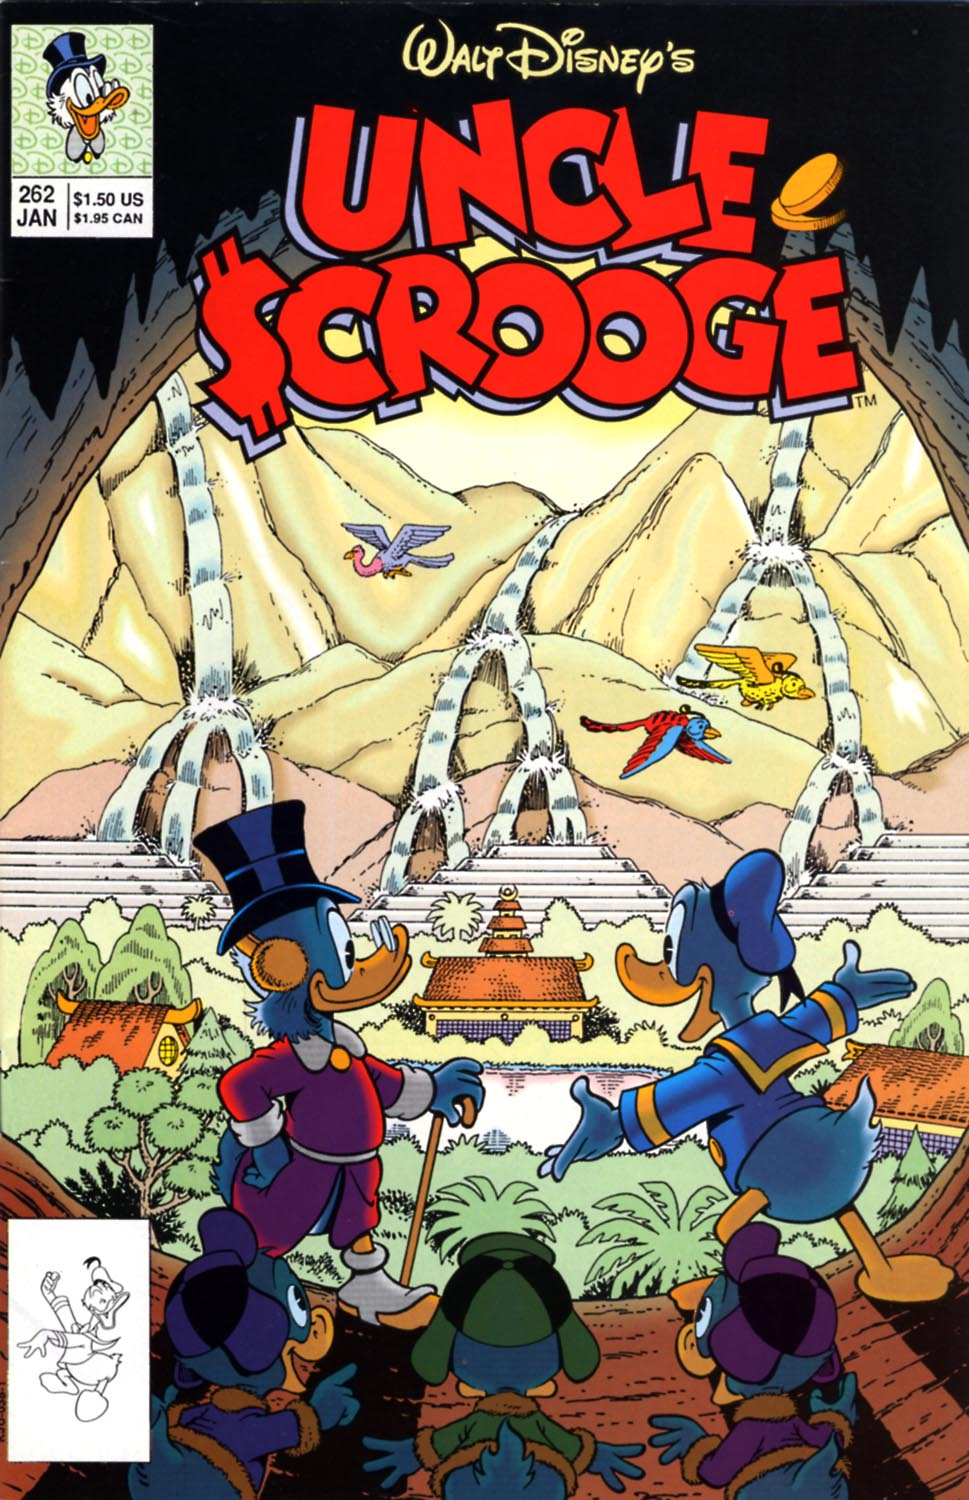 Uncle Scrooge (1953) Issue #262 #262 - English 1